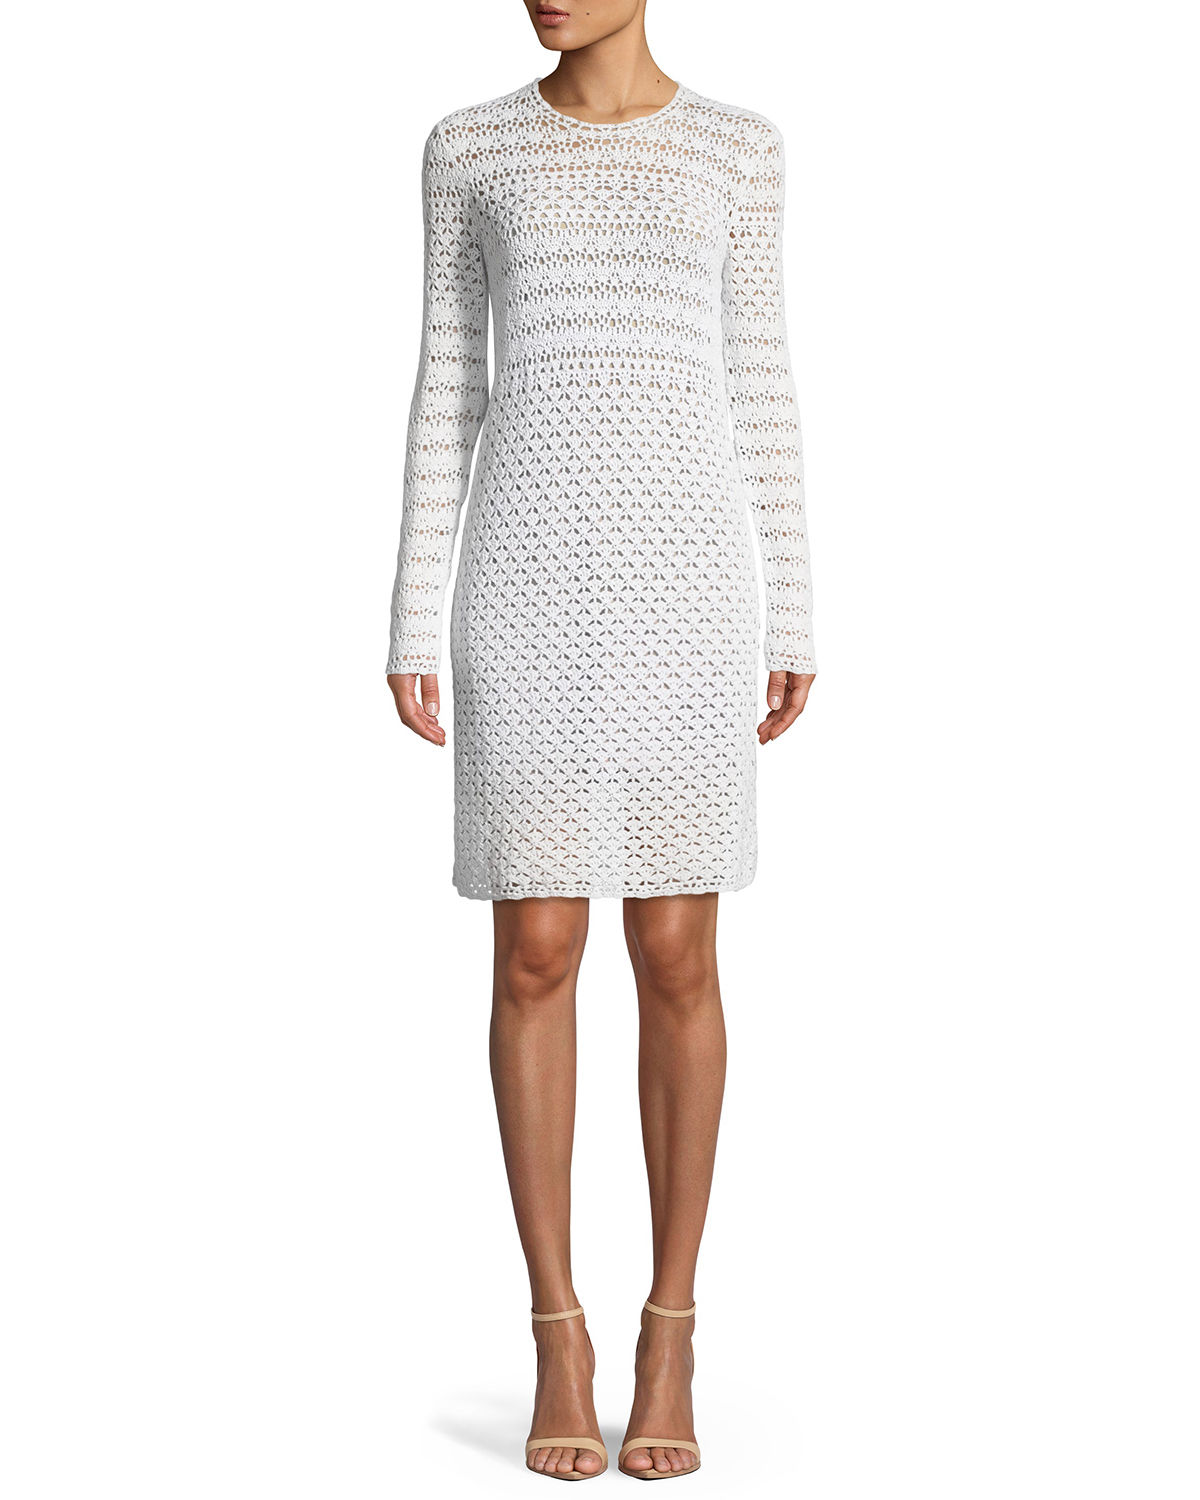 Crochet Knit Sweater Dress